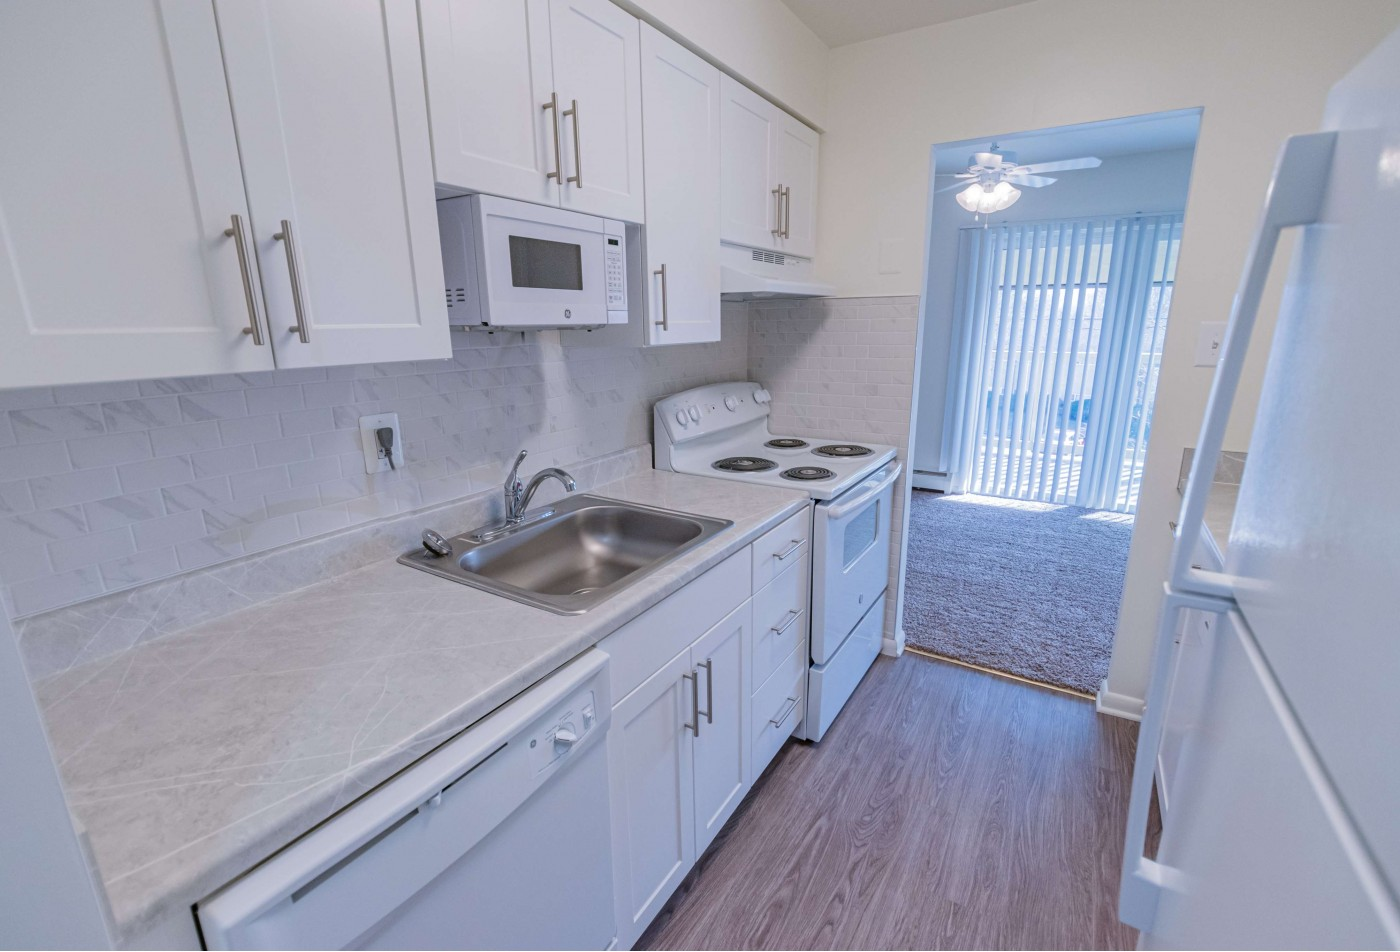 Apartments for rent in Closet Storage Space | Apartments Homes for rent in Downington, PA | Black Hawk Apartments, PA | Black Hawk Apartments